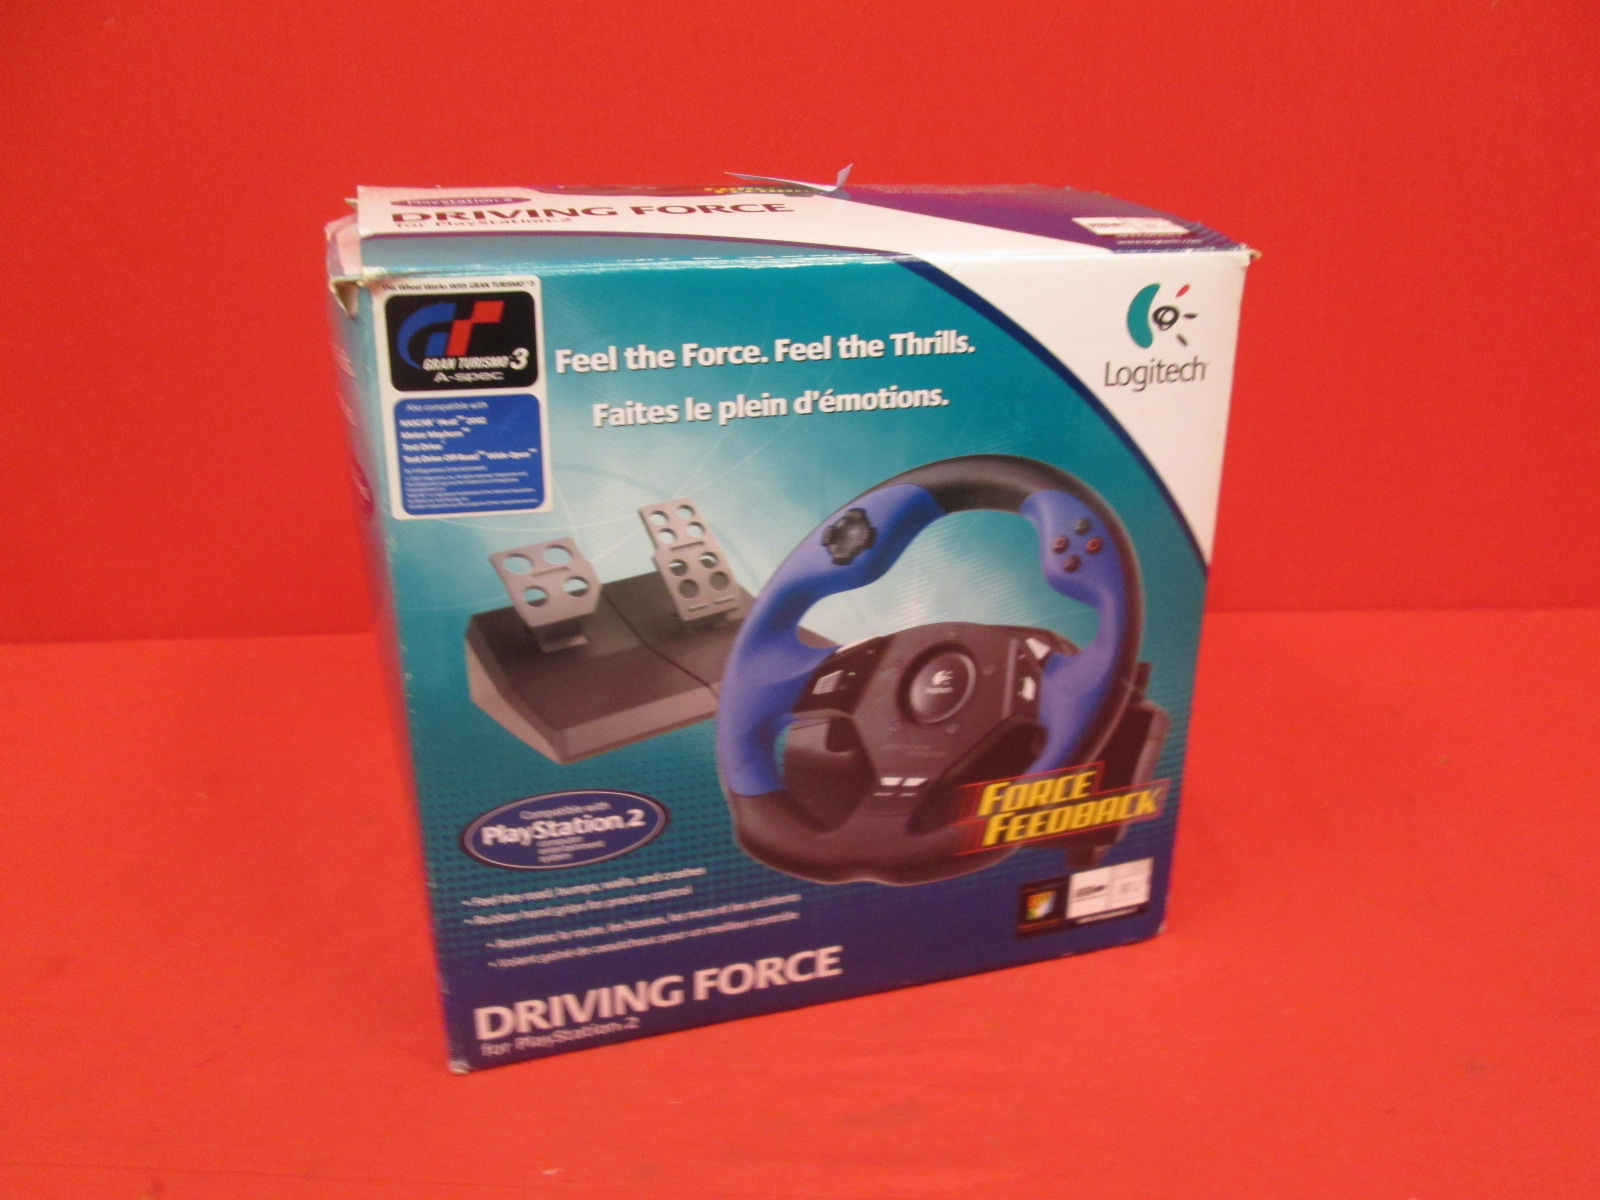 Image 1 of Logitech Driving Force Wheel For PlayStation 2 Incomplete